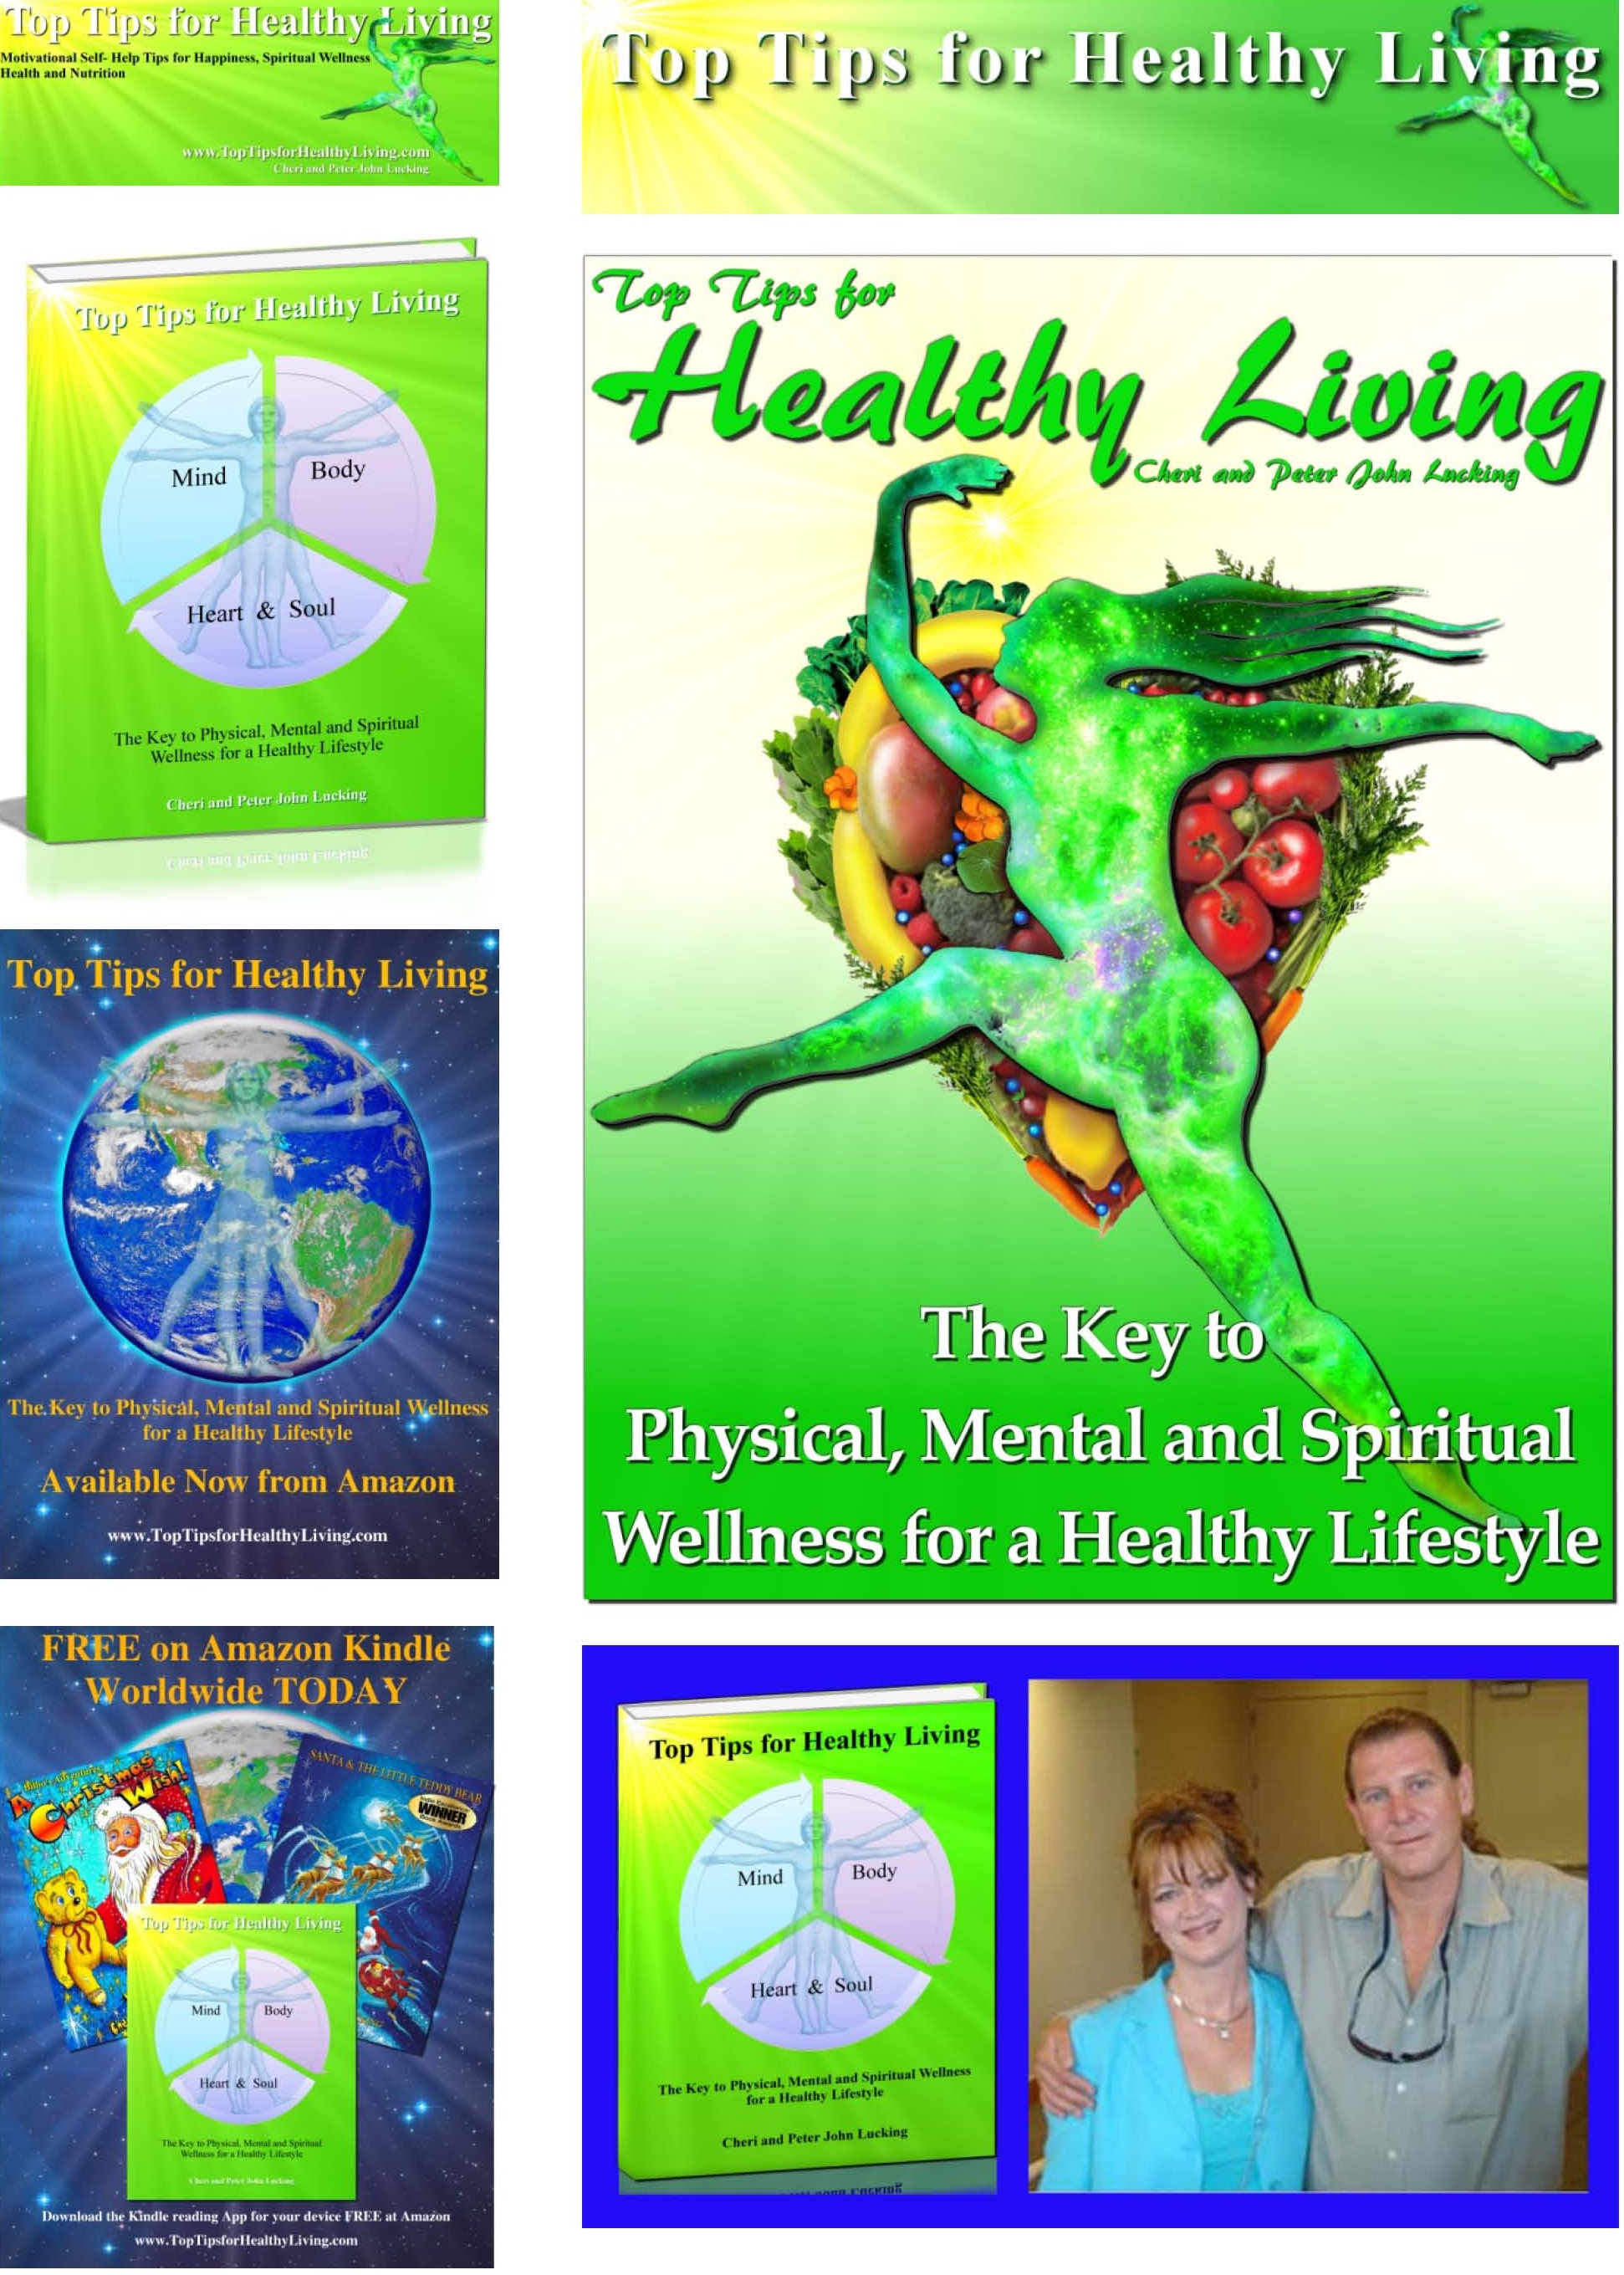 Top Tips for Healthy Living Self- Help Happiness and Motivation Real Magic Design Publishing Authors Cheri and Peter John Lucking.  Book, ebook, synopsis